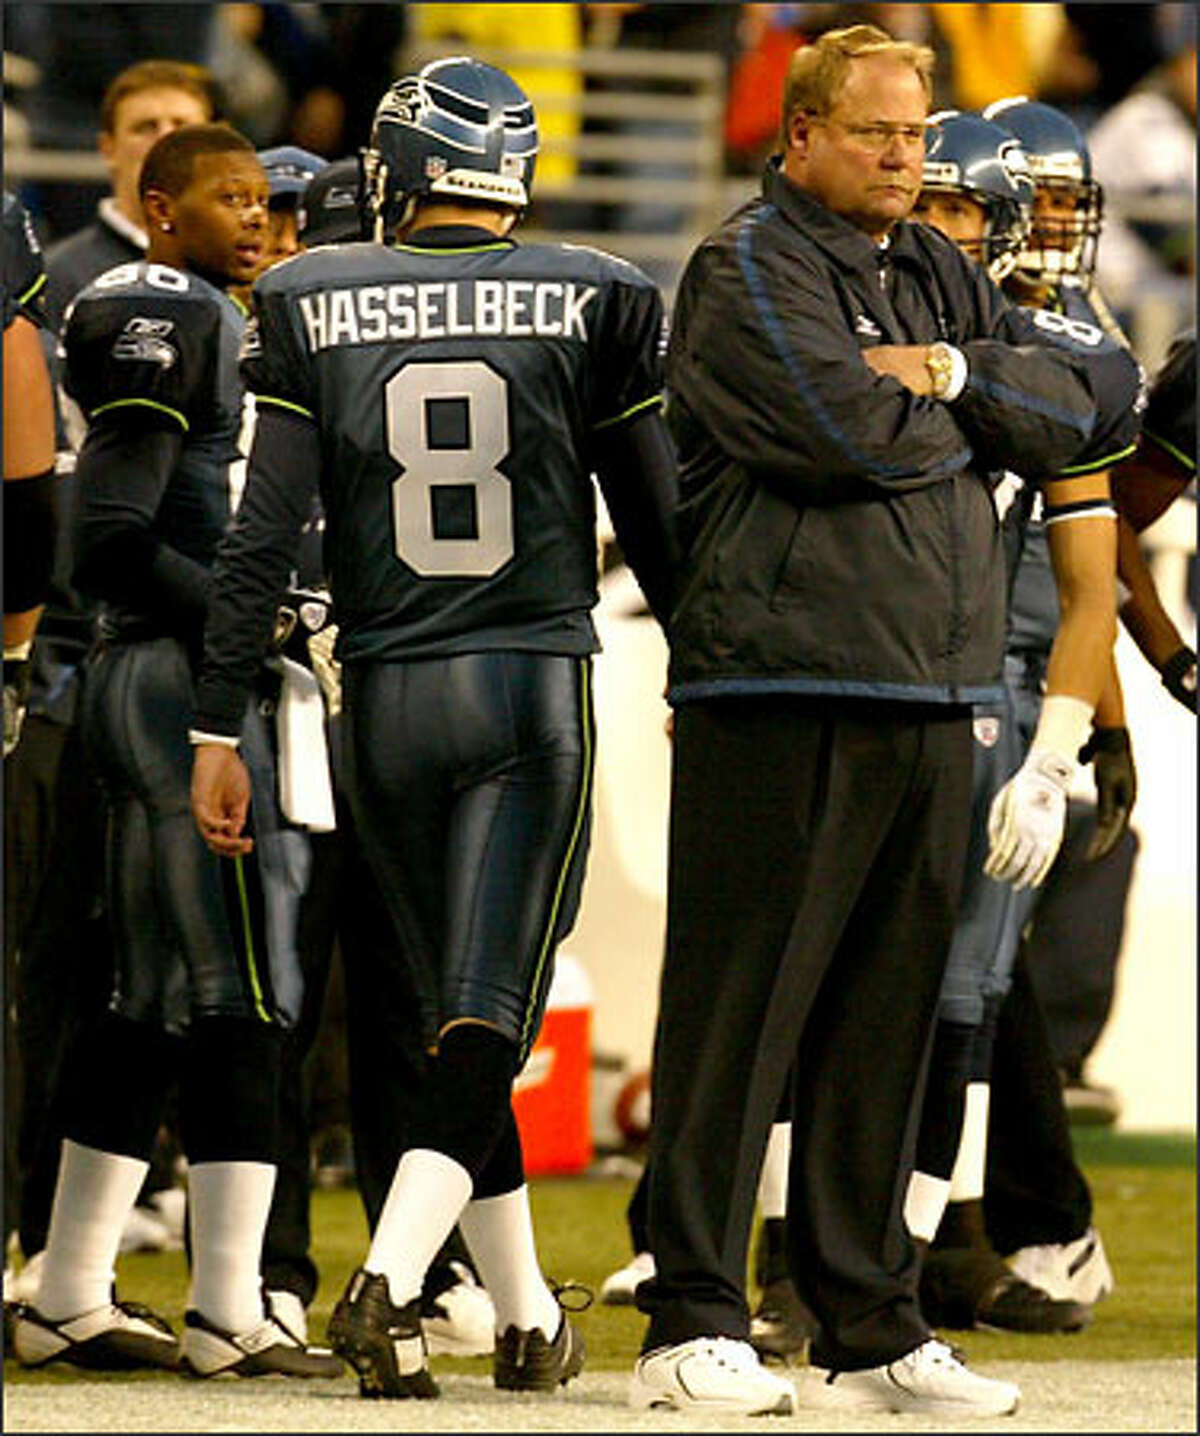 Mike Holmgren seems to be giving quarterback Matt Hasselbeck the cold shoulder after Deltha O'Neal's pickoff.